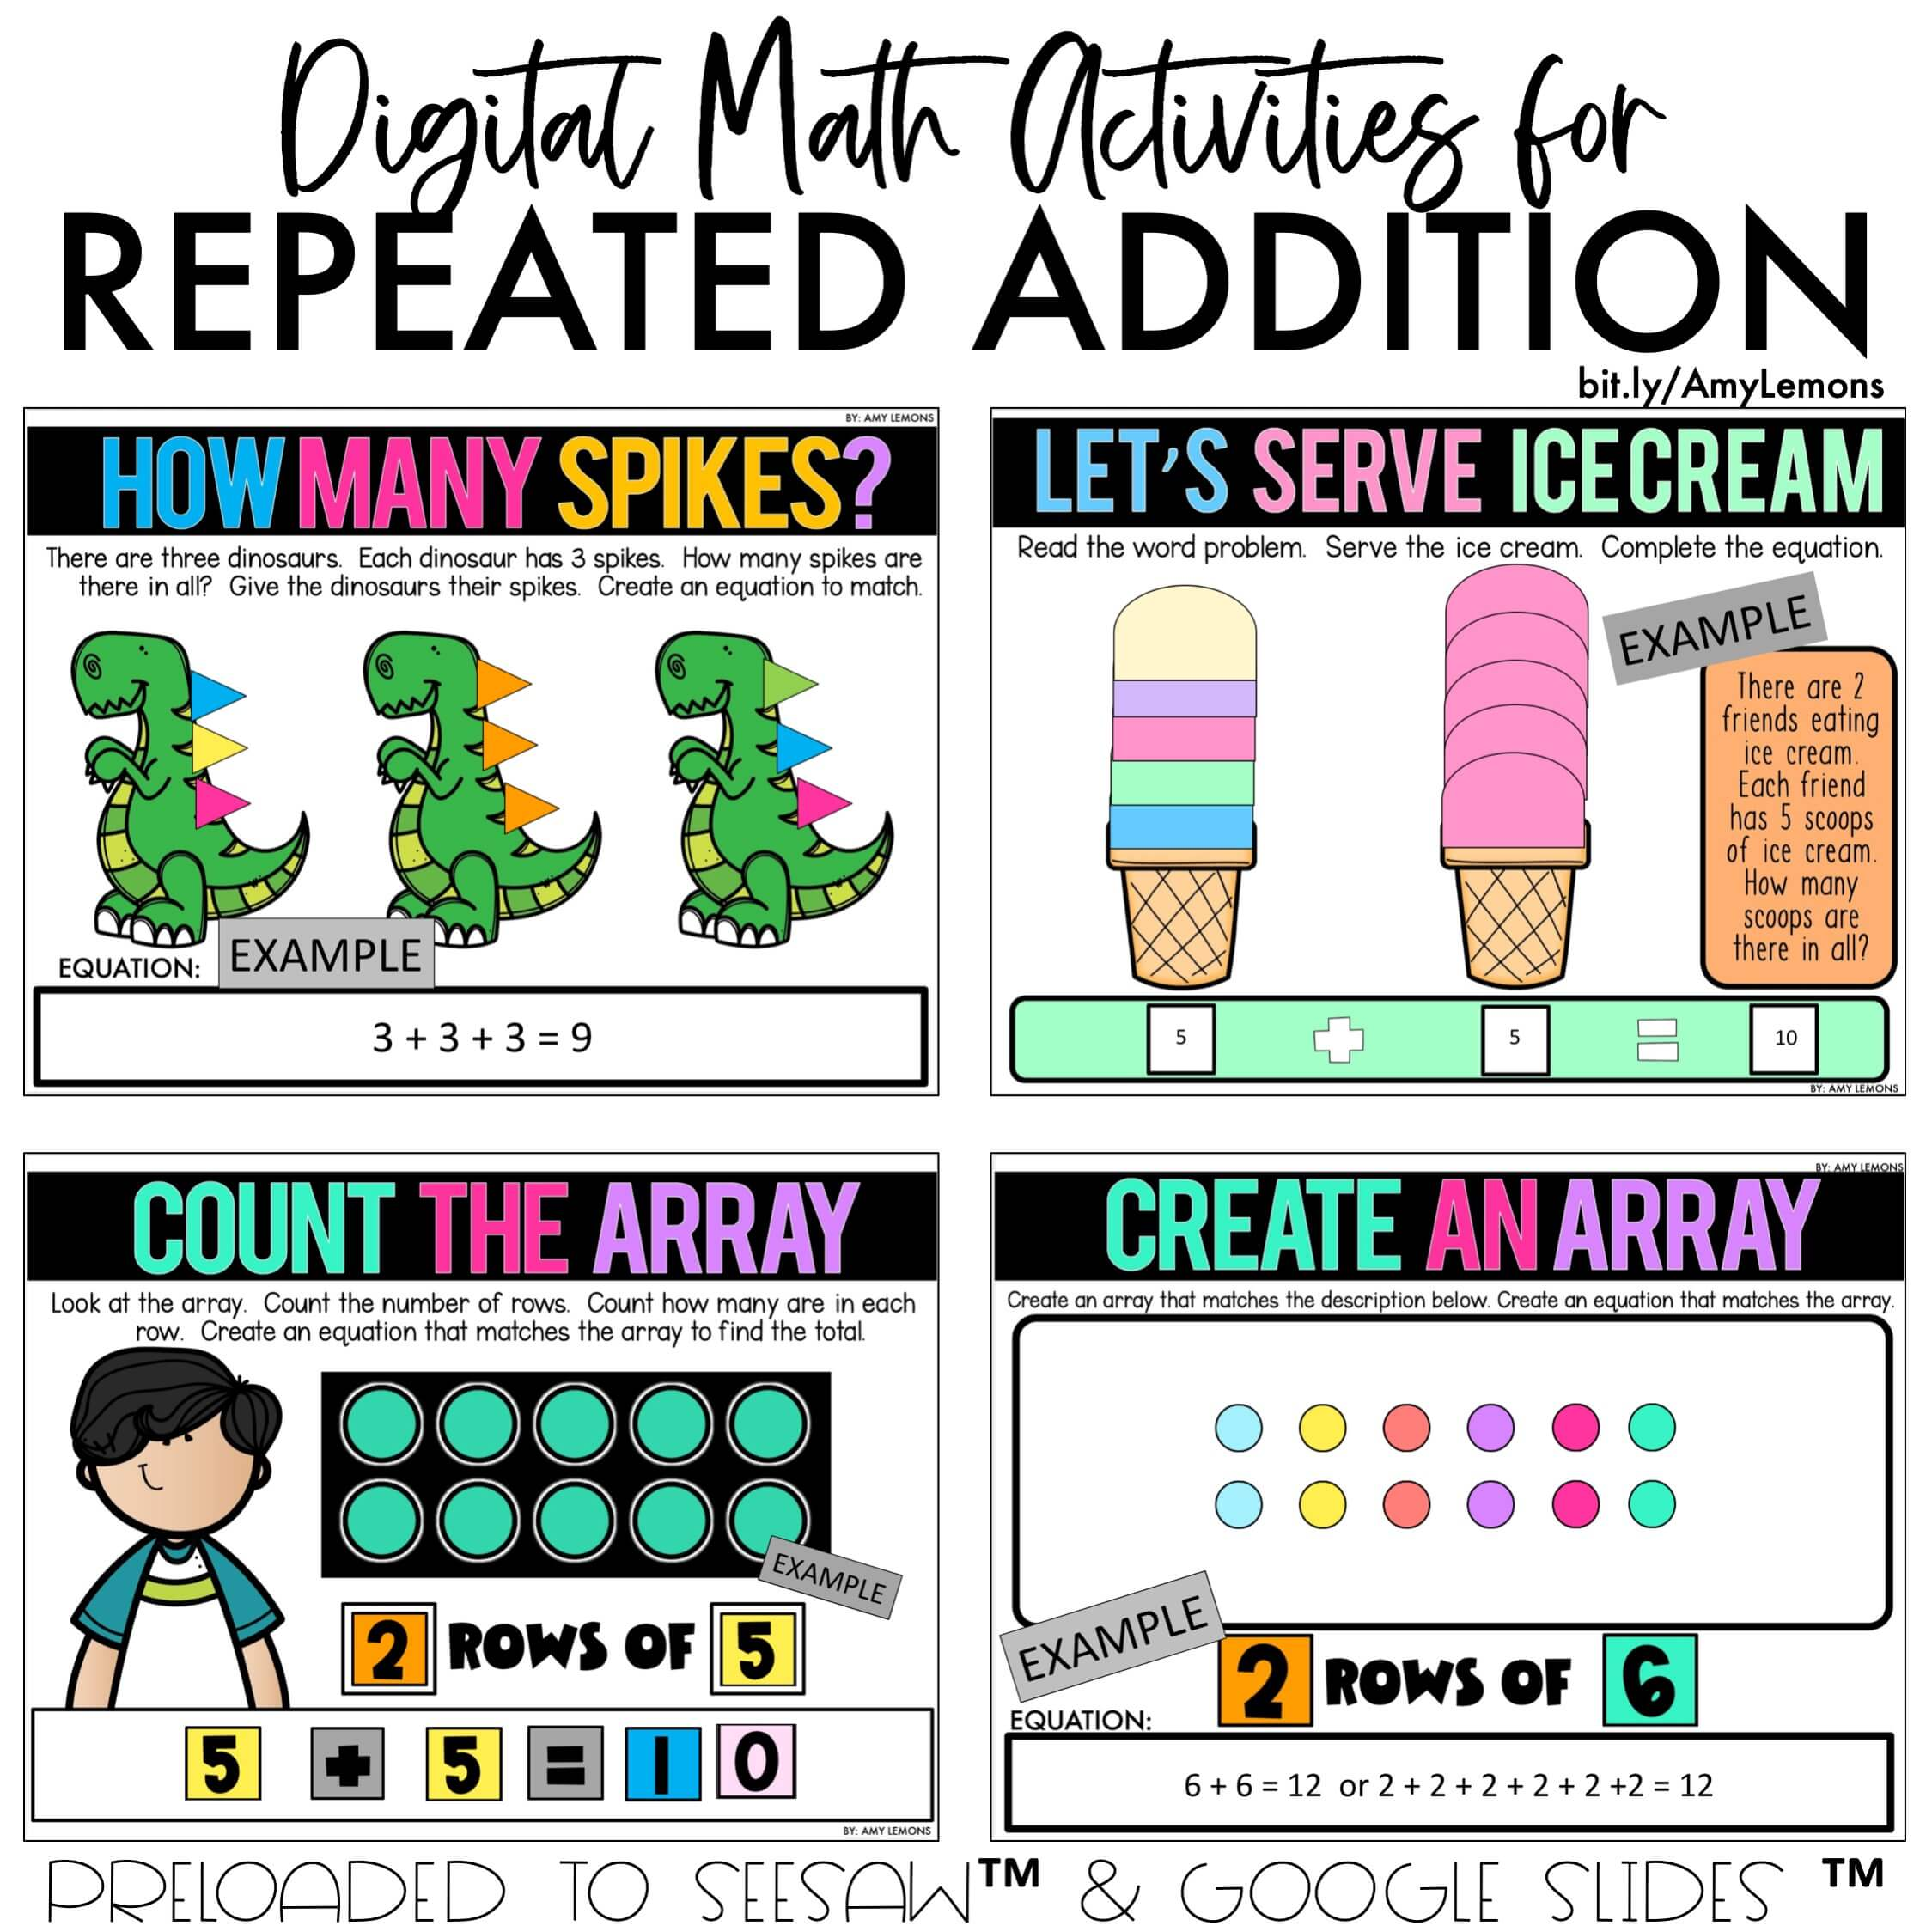 hight resolution of Digital Math Activities for Virtual Learning - Amy Lemons